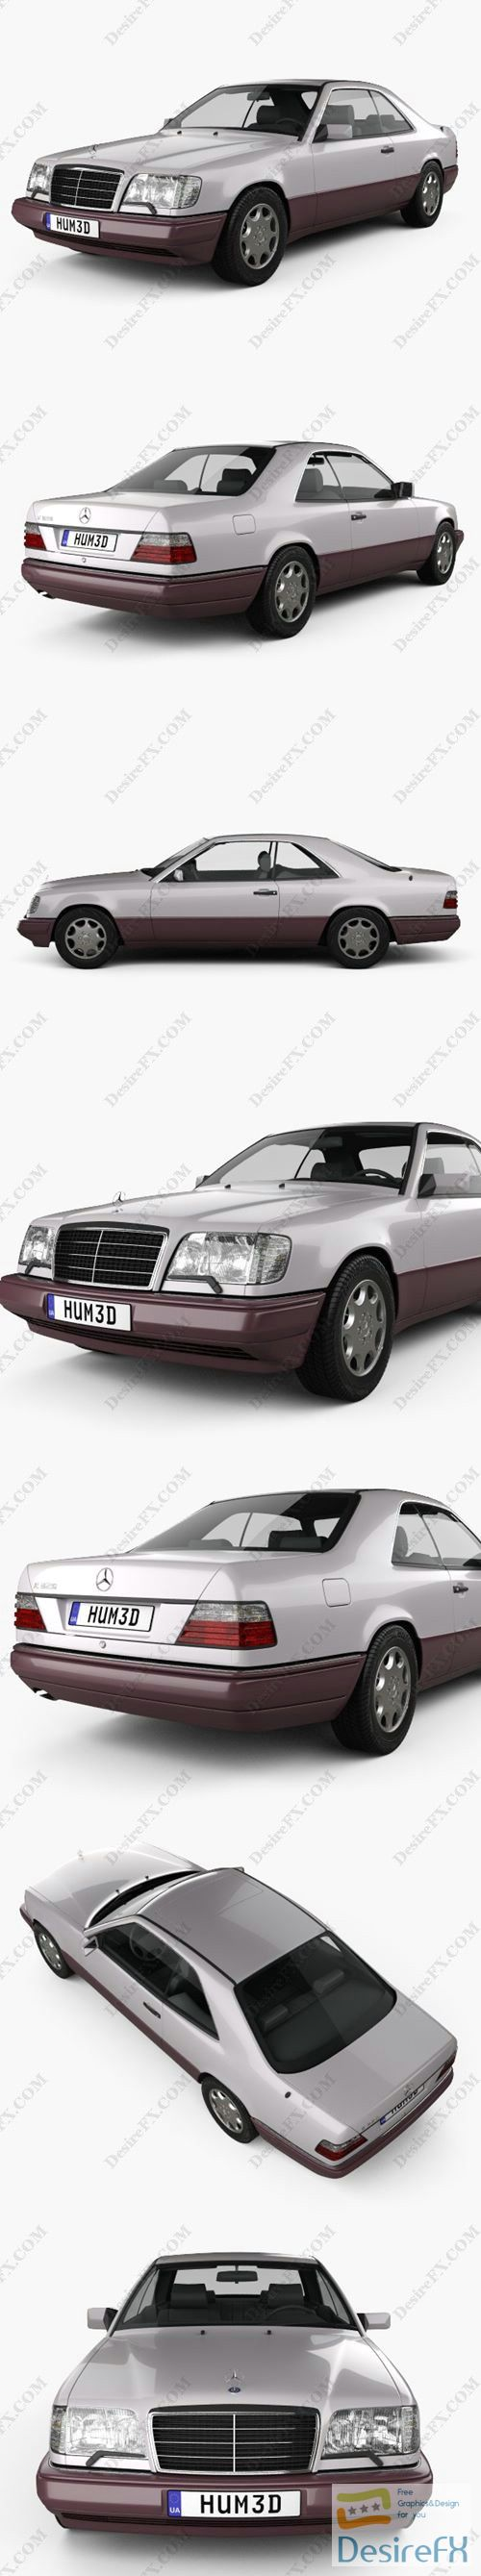 Mercedes-Benz E-class coupe 1993 3D Model